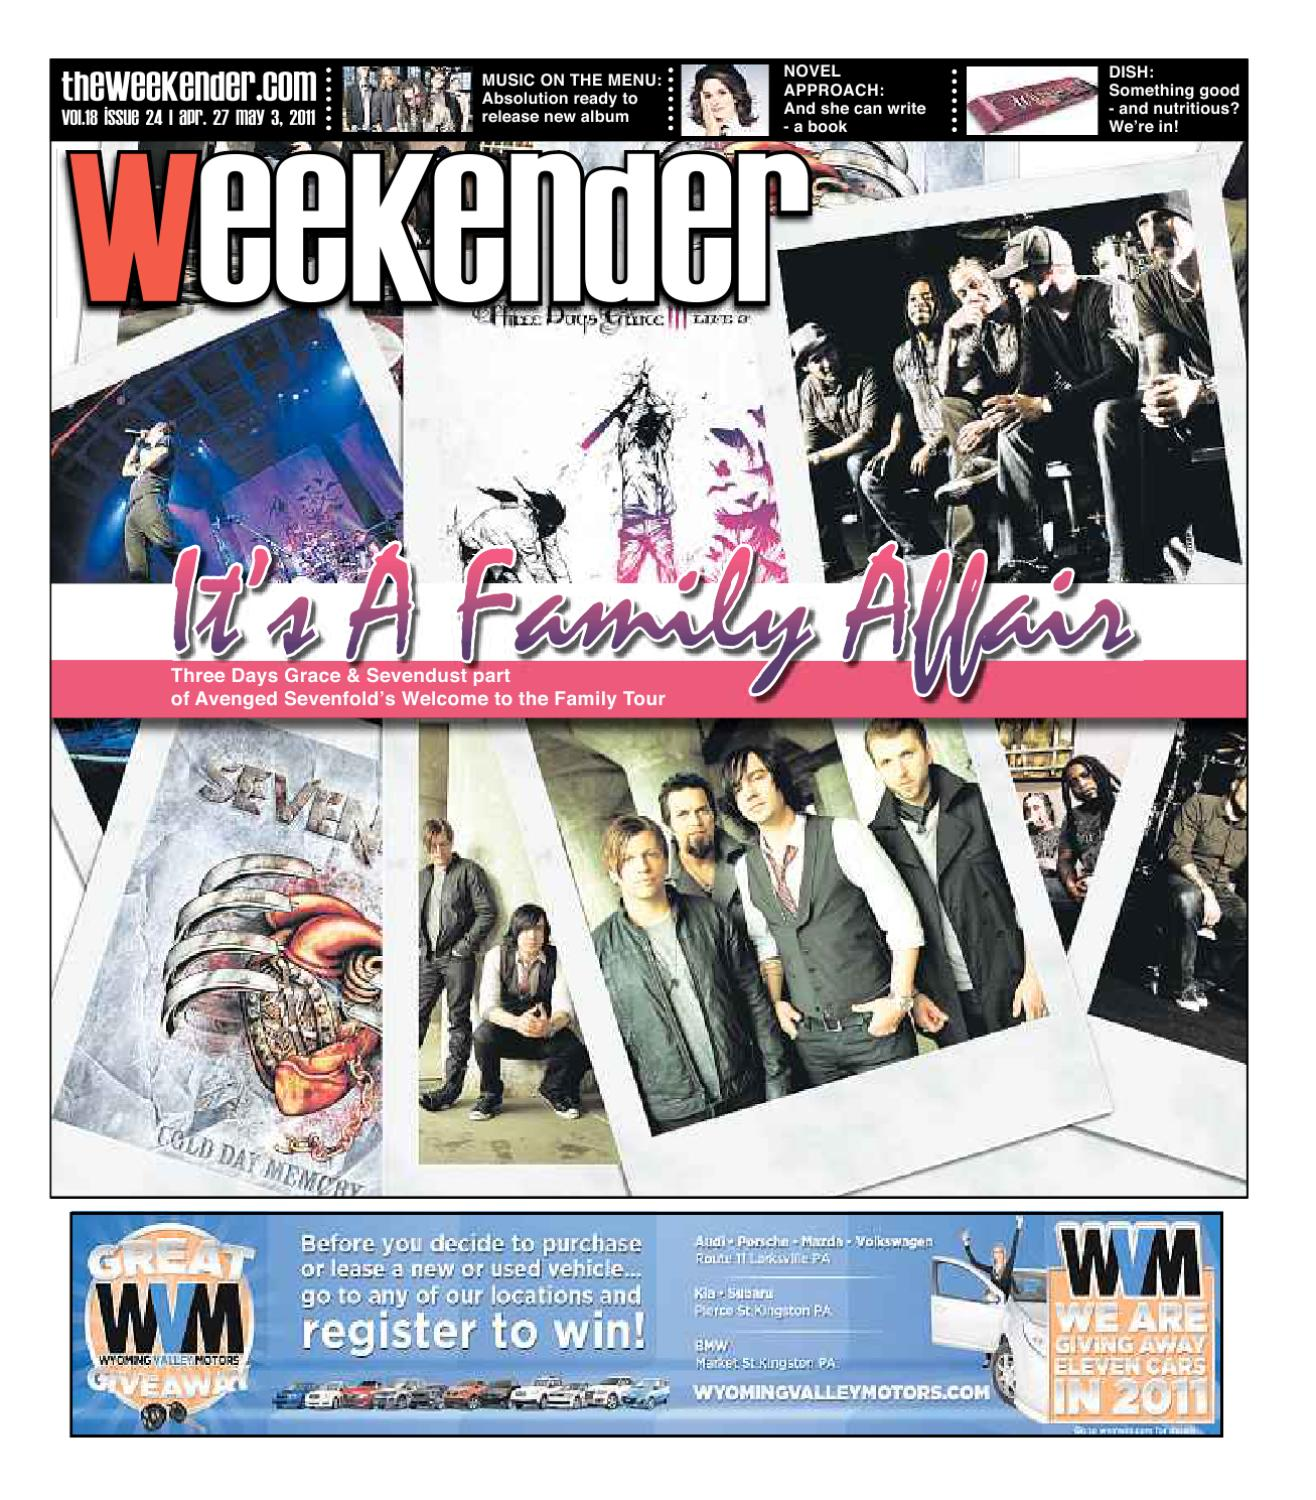 c2a7140b9 The Weekender 04-27-2011 by The Wilkes-Barre Publishing Company - issuu